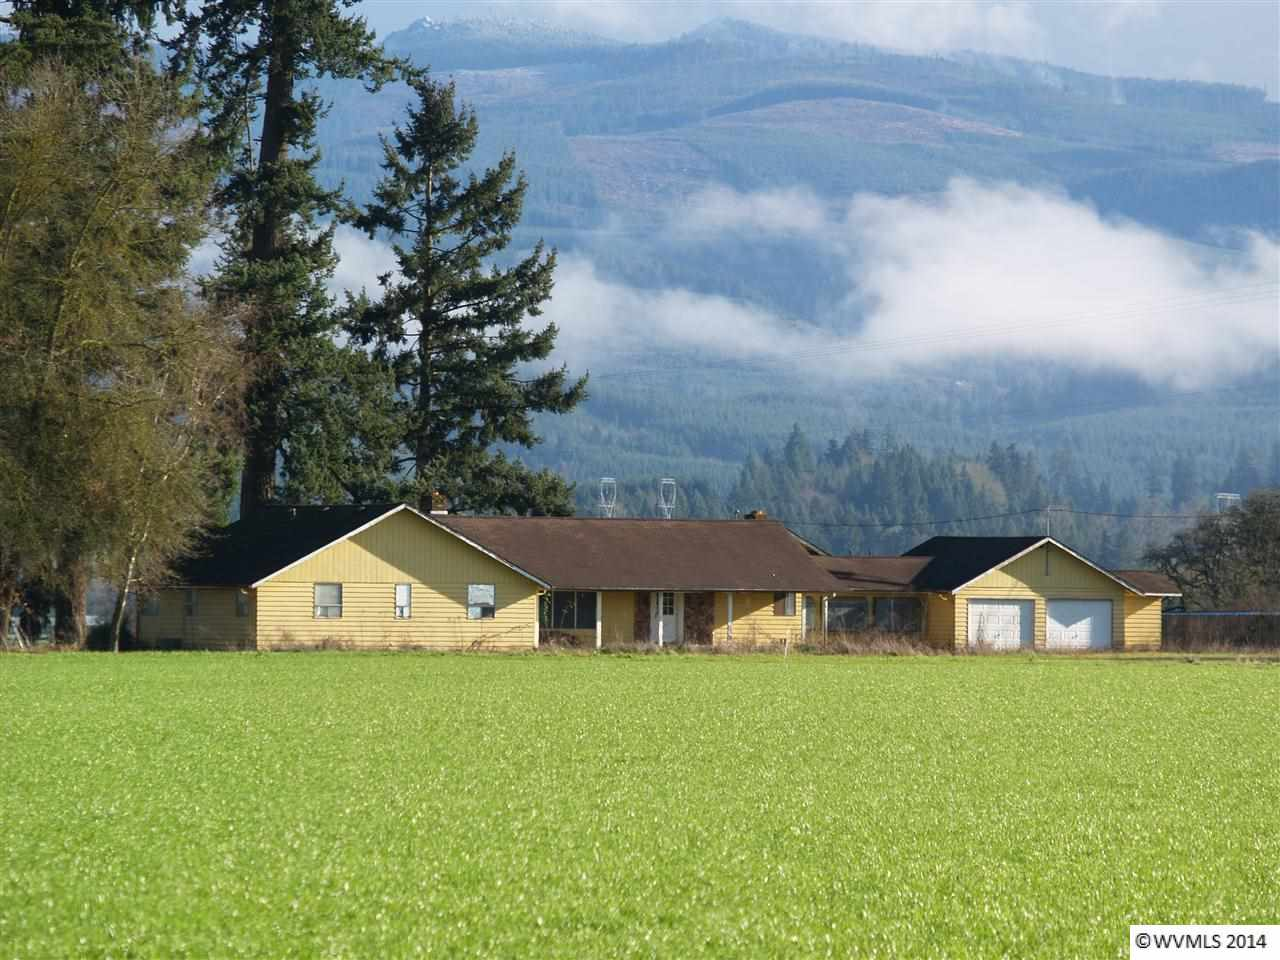 180.2 acres in Scio, Oregon